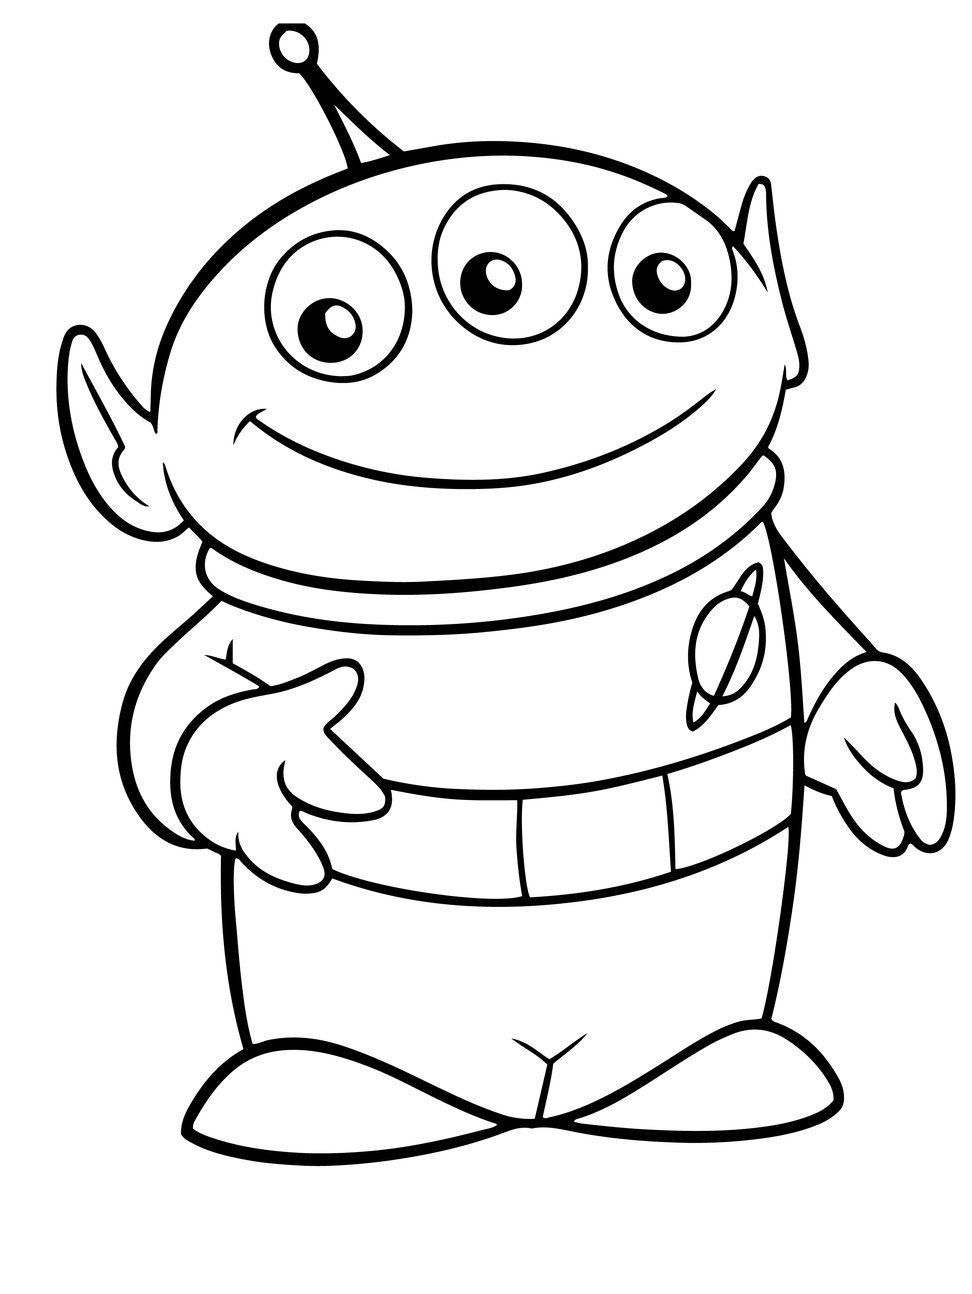 Toy Story Aliens Coloring Pages Best Coloring Pages For Kids Toy Story Coloring Pages Coloring Pages Toy Story Alien